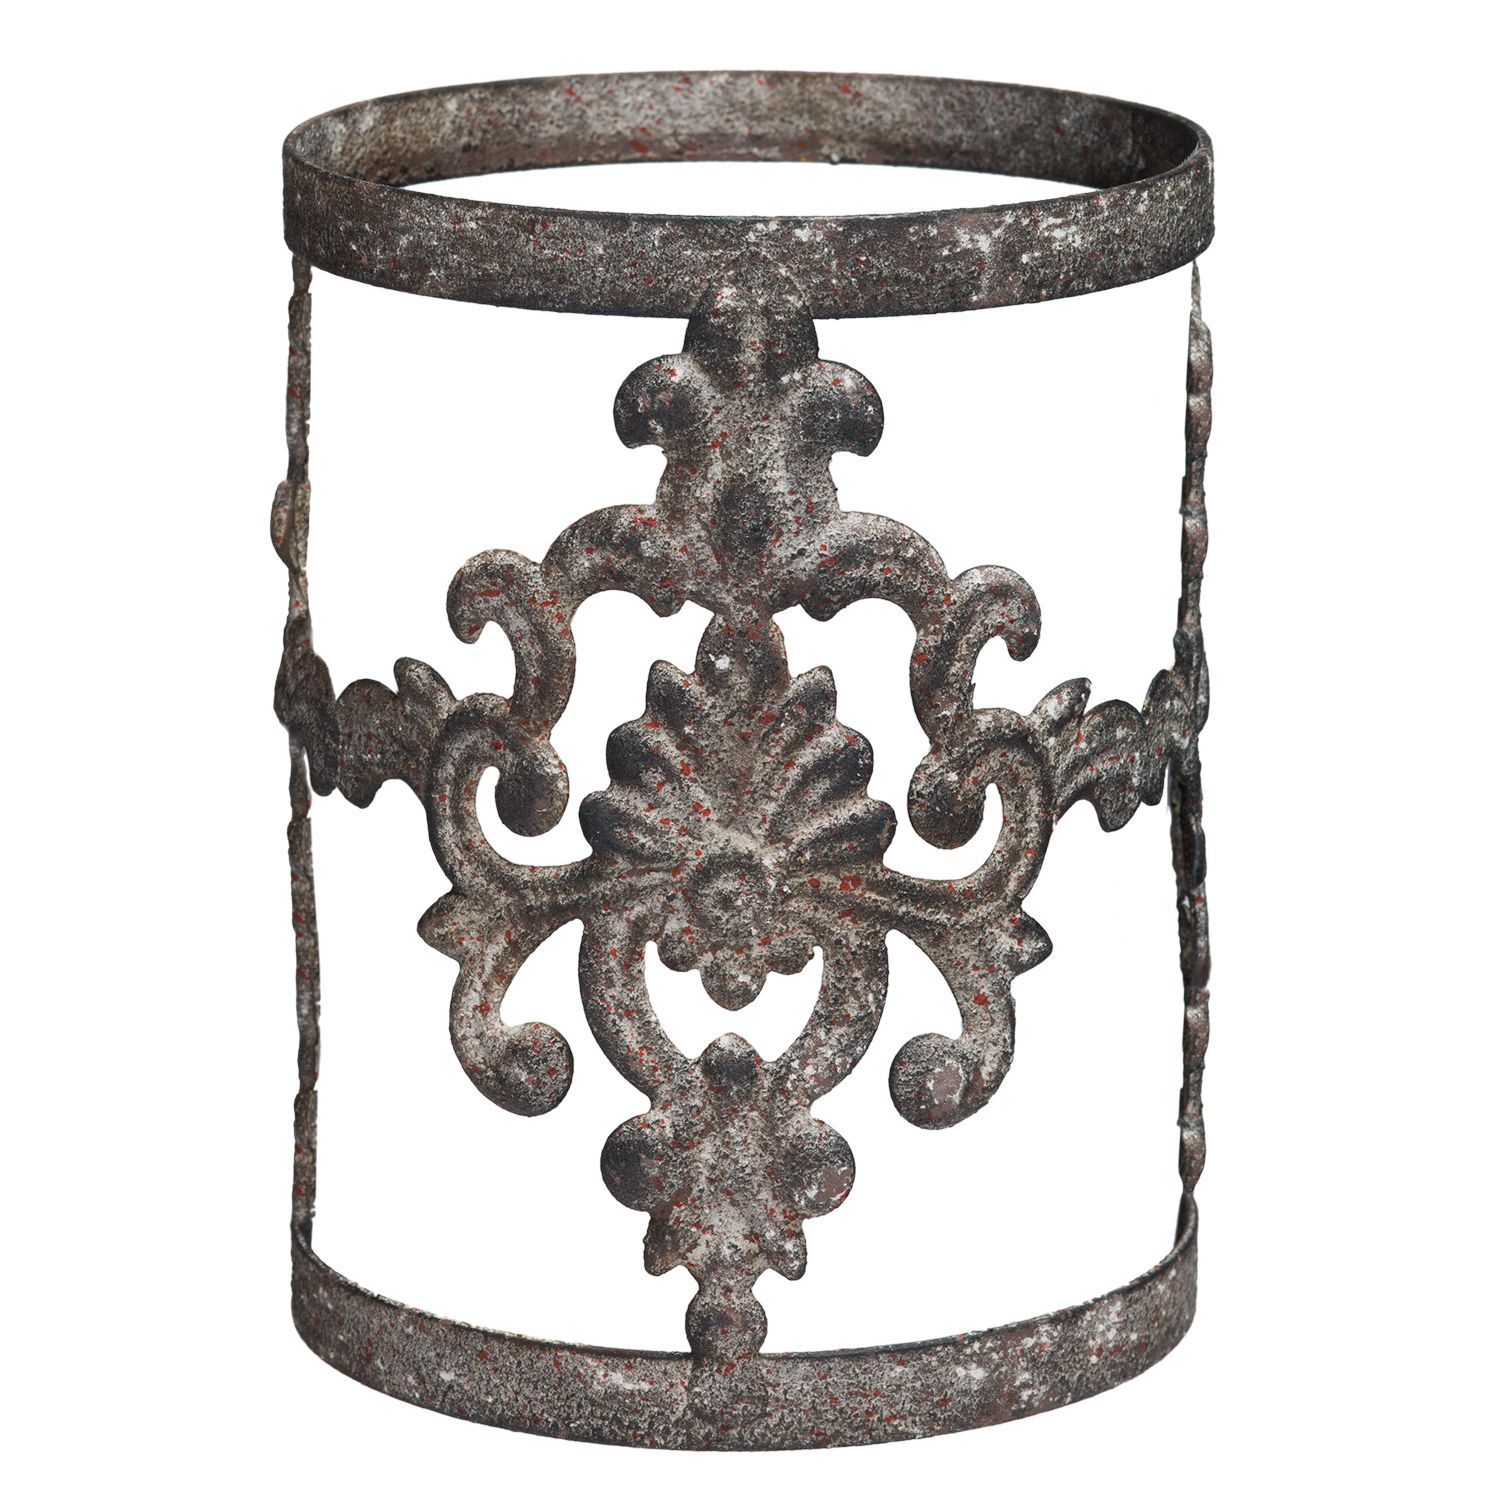 Damask scentsy warmer wrap raw metal worked into